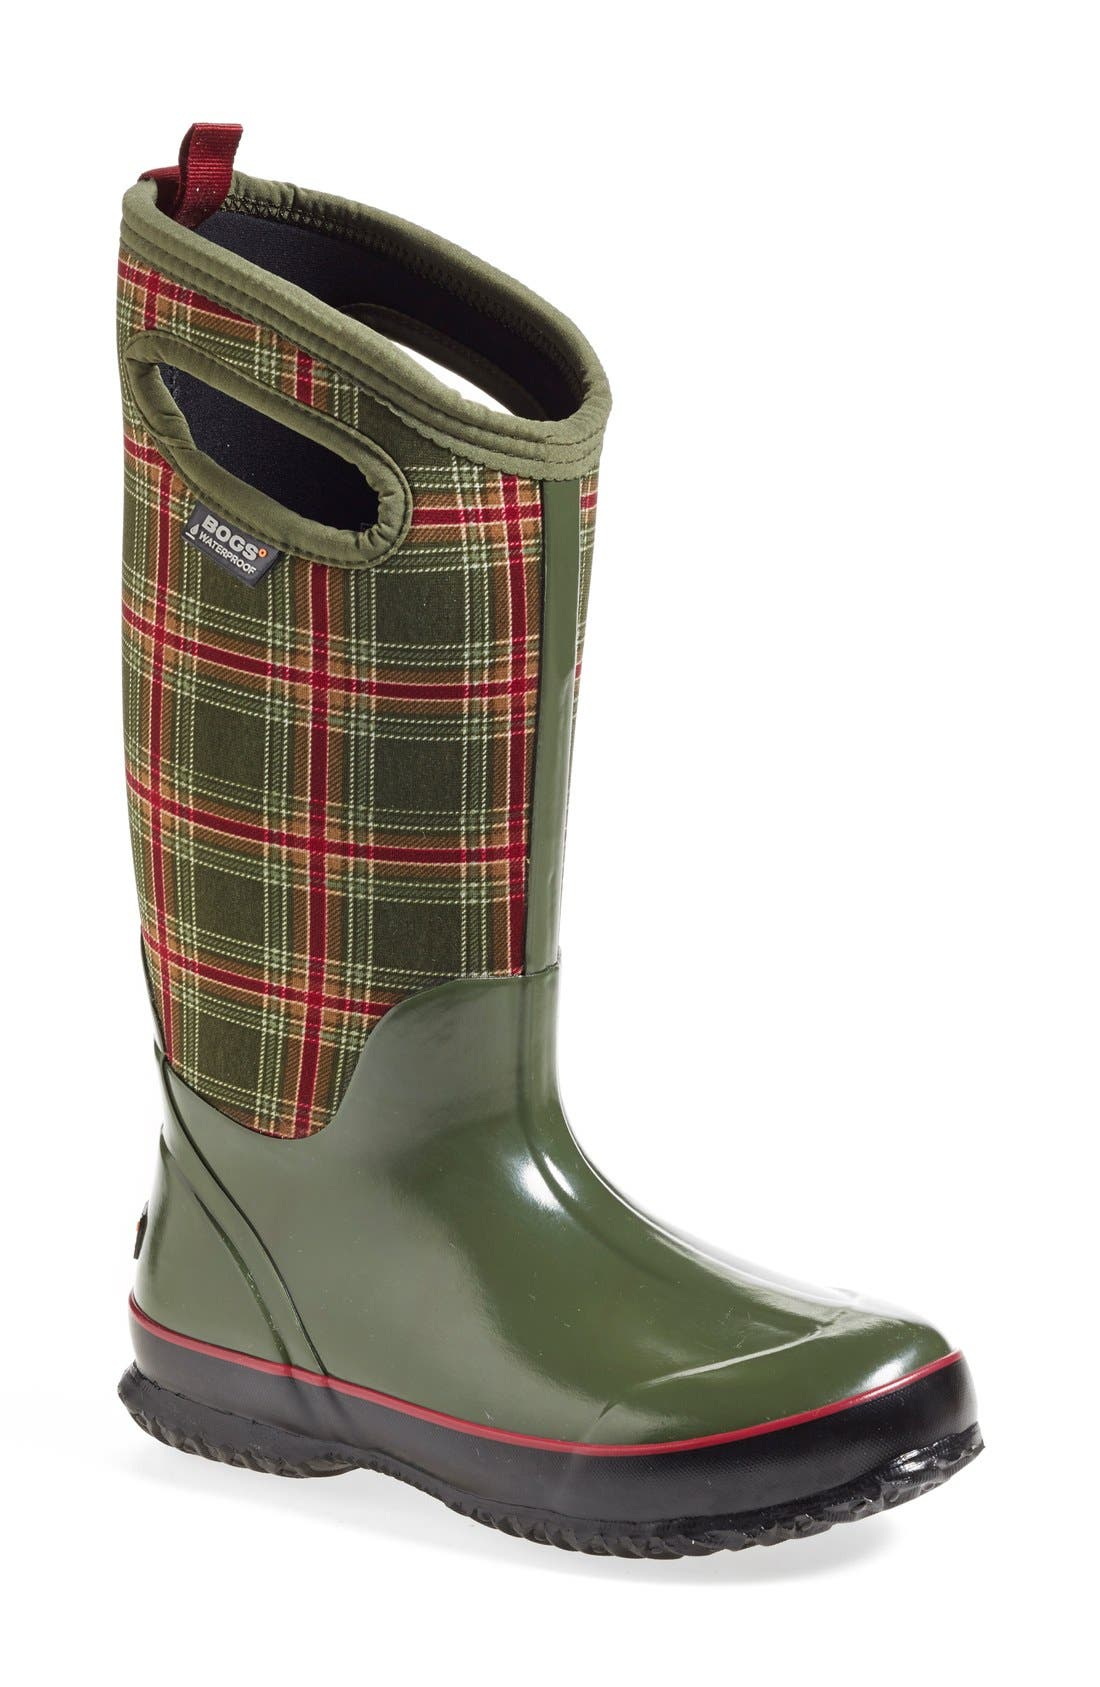 Alternate Image 1 Selected - Bogs 'Classic Winter Plaid' Tall Waterproof Snow Boot with Cutout Handles (Women)